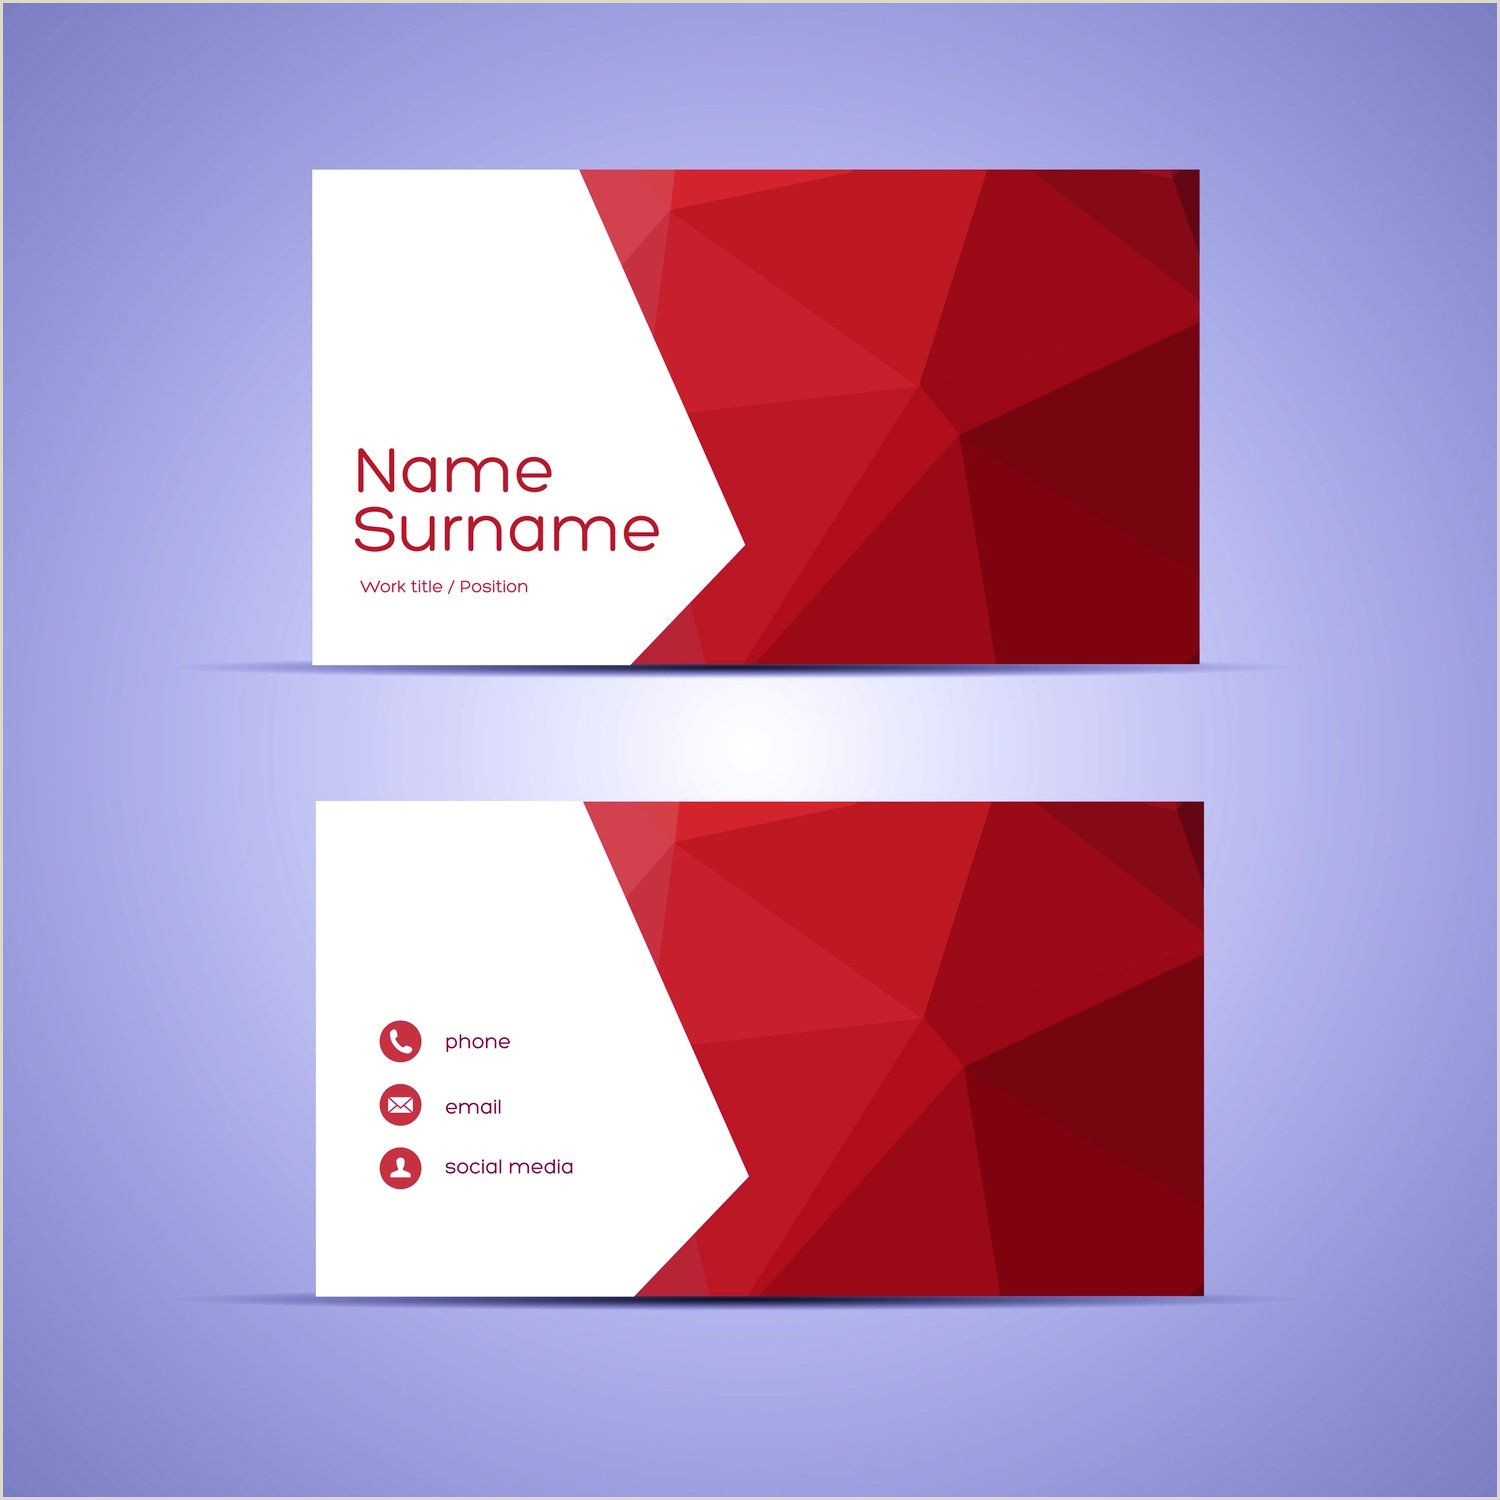 Unique Way To Organize Business Cards The Business Card Is A Great Munication Tool For